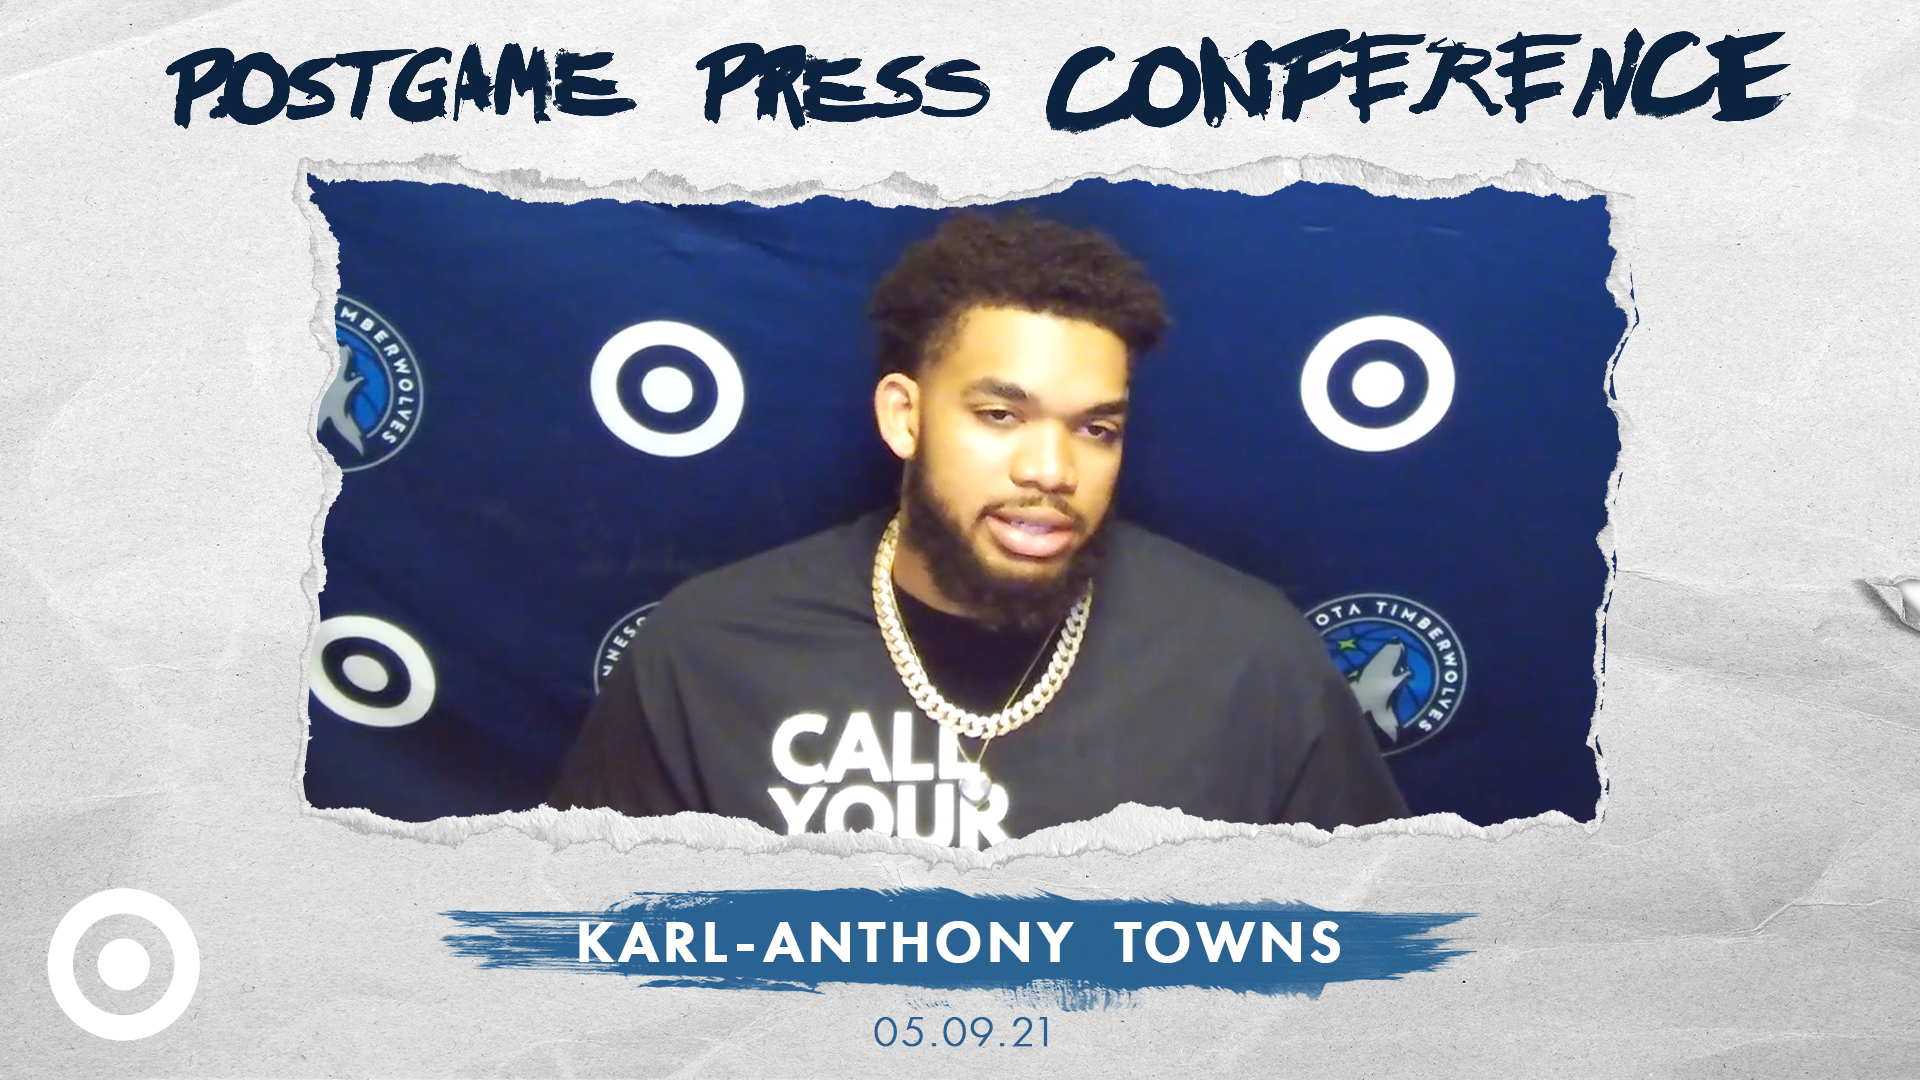 Karl-Anthony Towns Postgame Press Conference - May 9, 2021